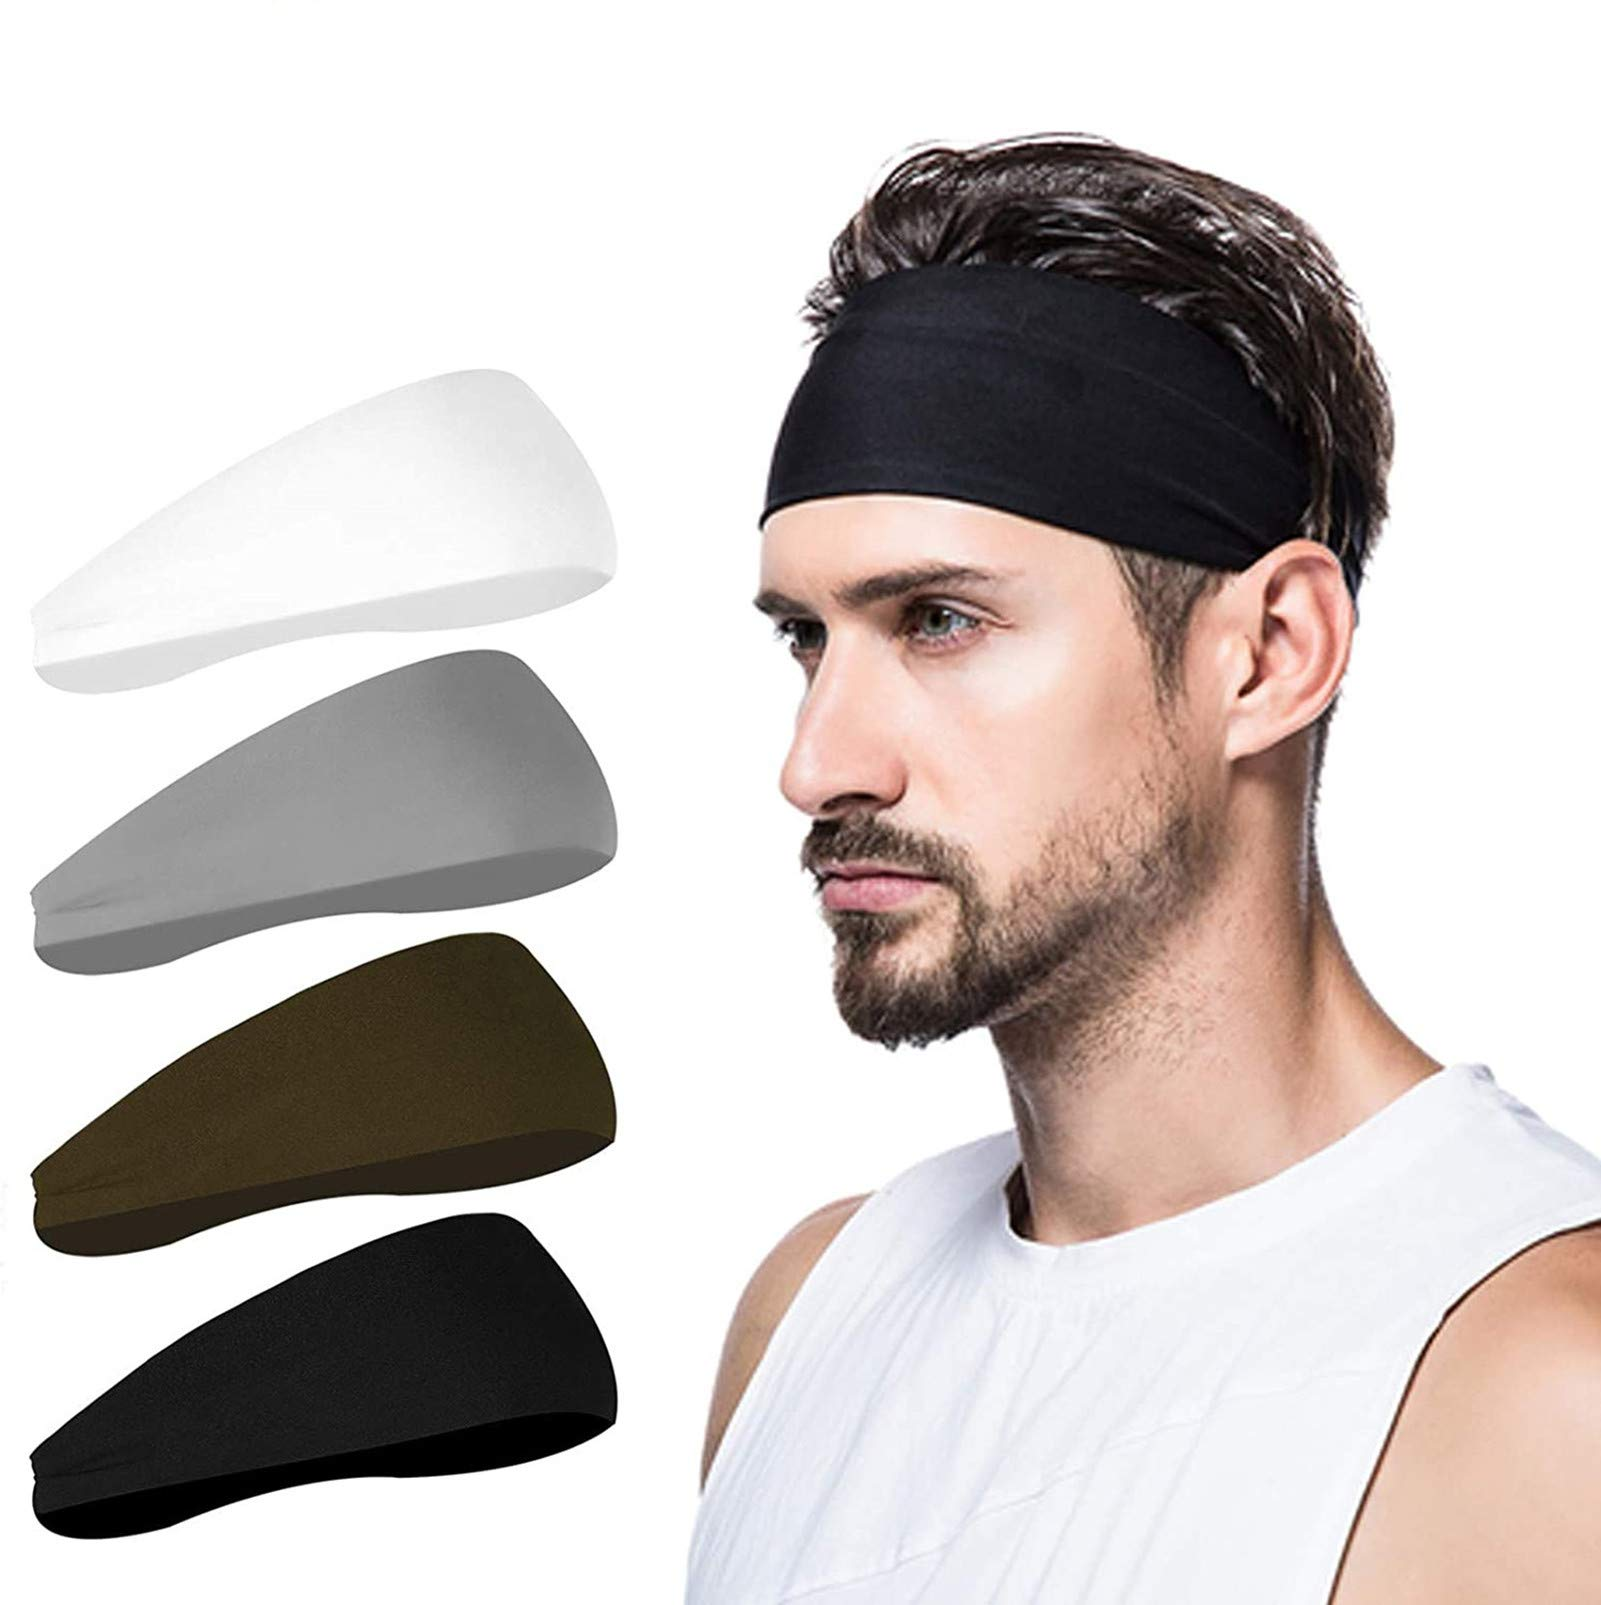 poshei Mens Headband (4 Pack), Mens Sweatband & Sports Headband for Running, Hiking,Yoga, Basketball,Cycling Helmet Friendly - Stretchy Moisture Wicking Unisex Hairband